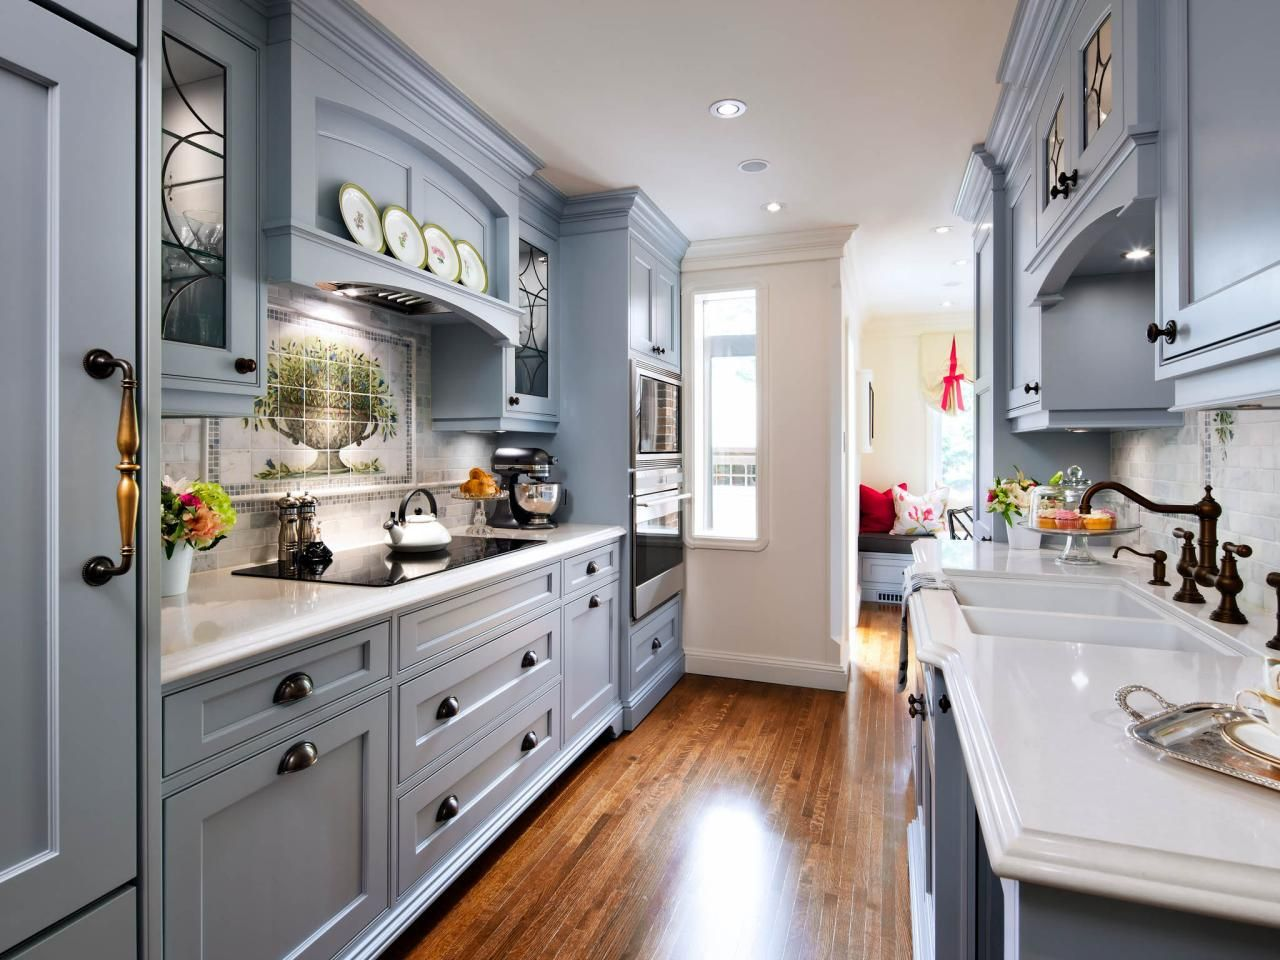 Blue Traditional Kitchen Pictures: English Cottage Charm | English ...